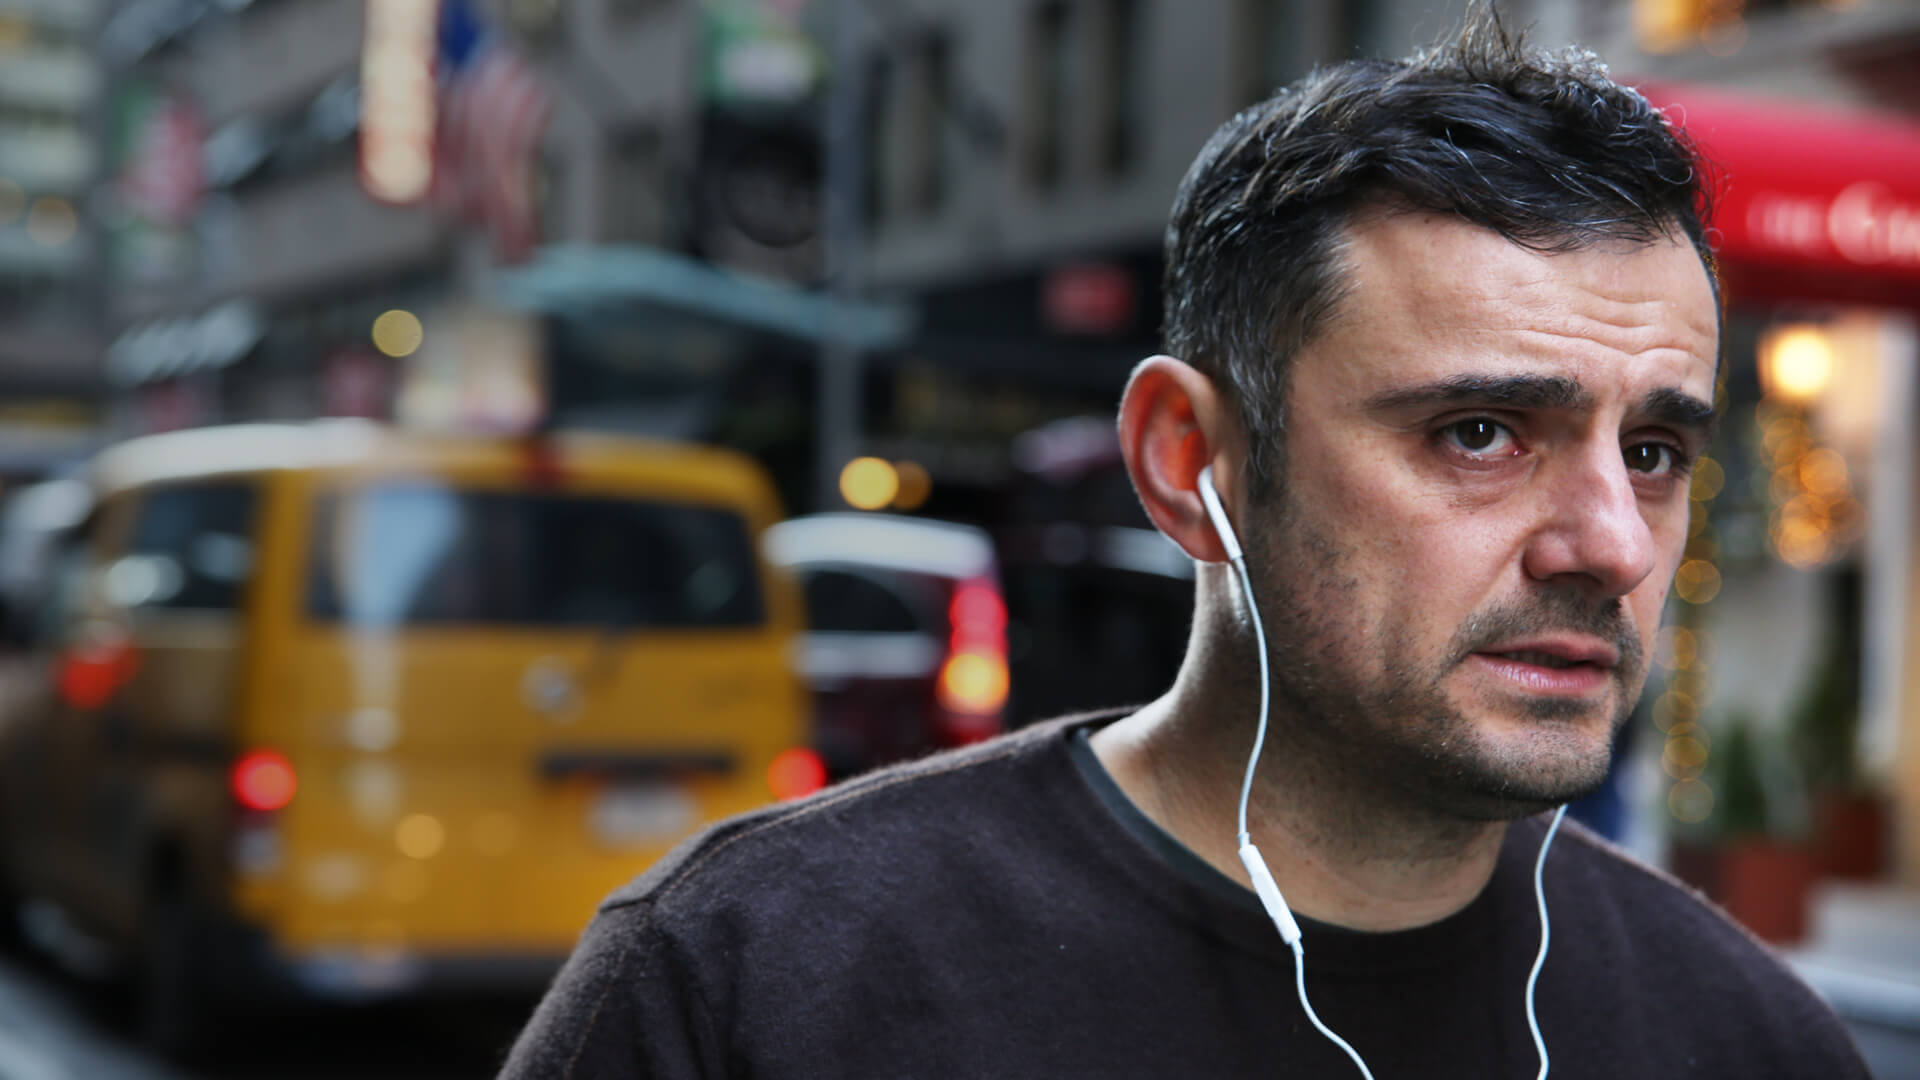 3 Points From #AskGaryVee to Help Anyone Find Their Hustle